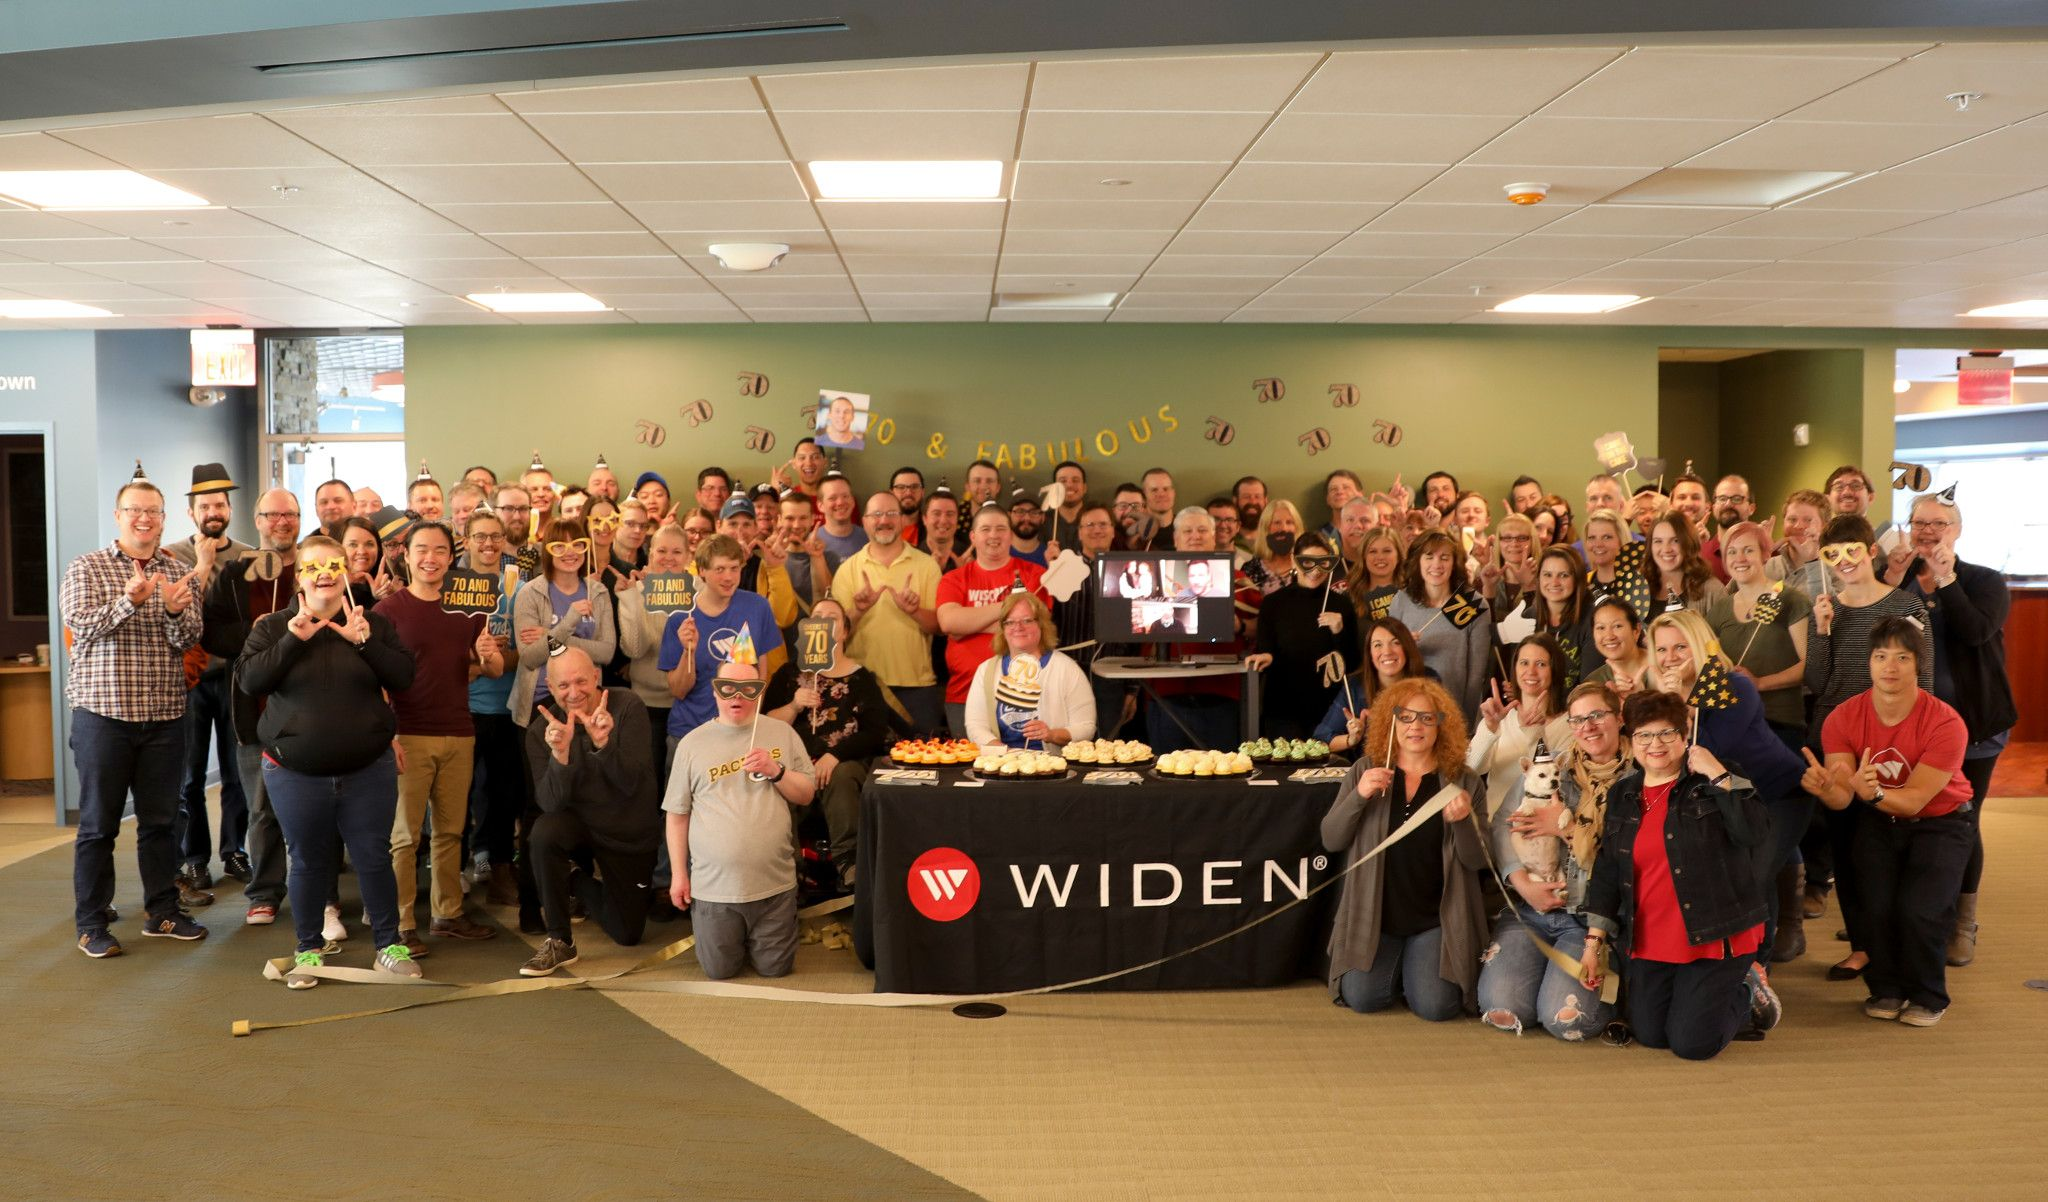 Widen Celebrates 70 Years in Business